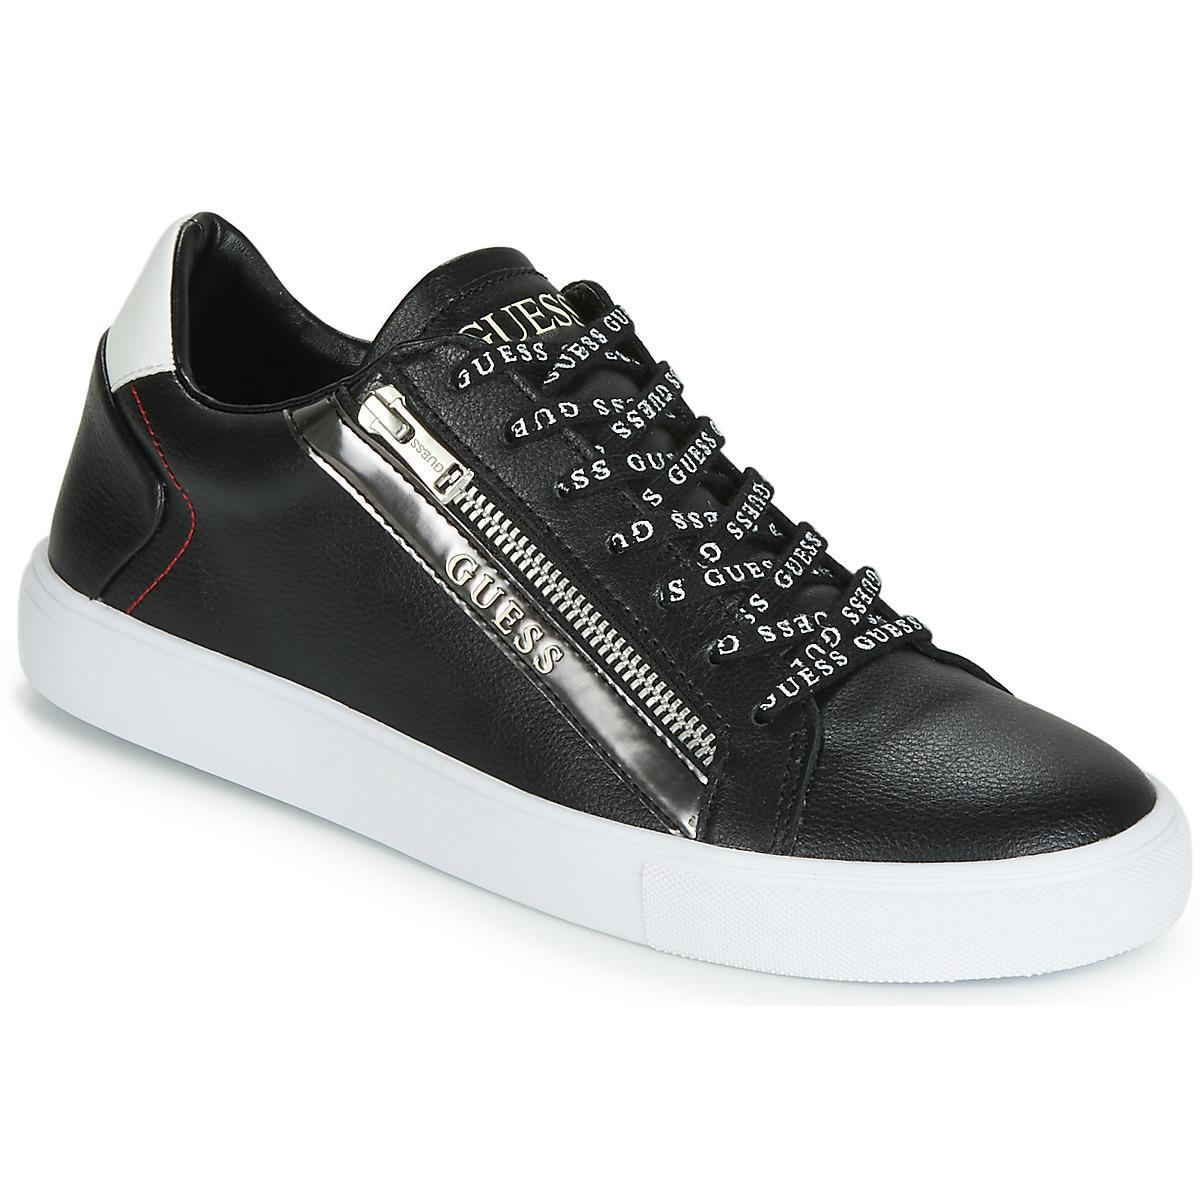 Guess Luiss Lo Shoes (trainers) in